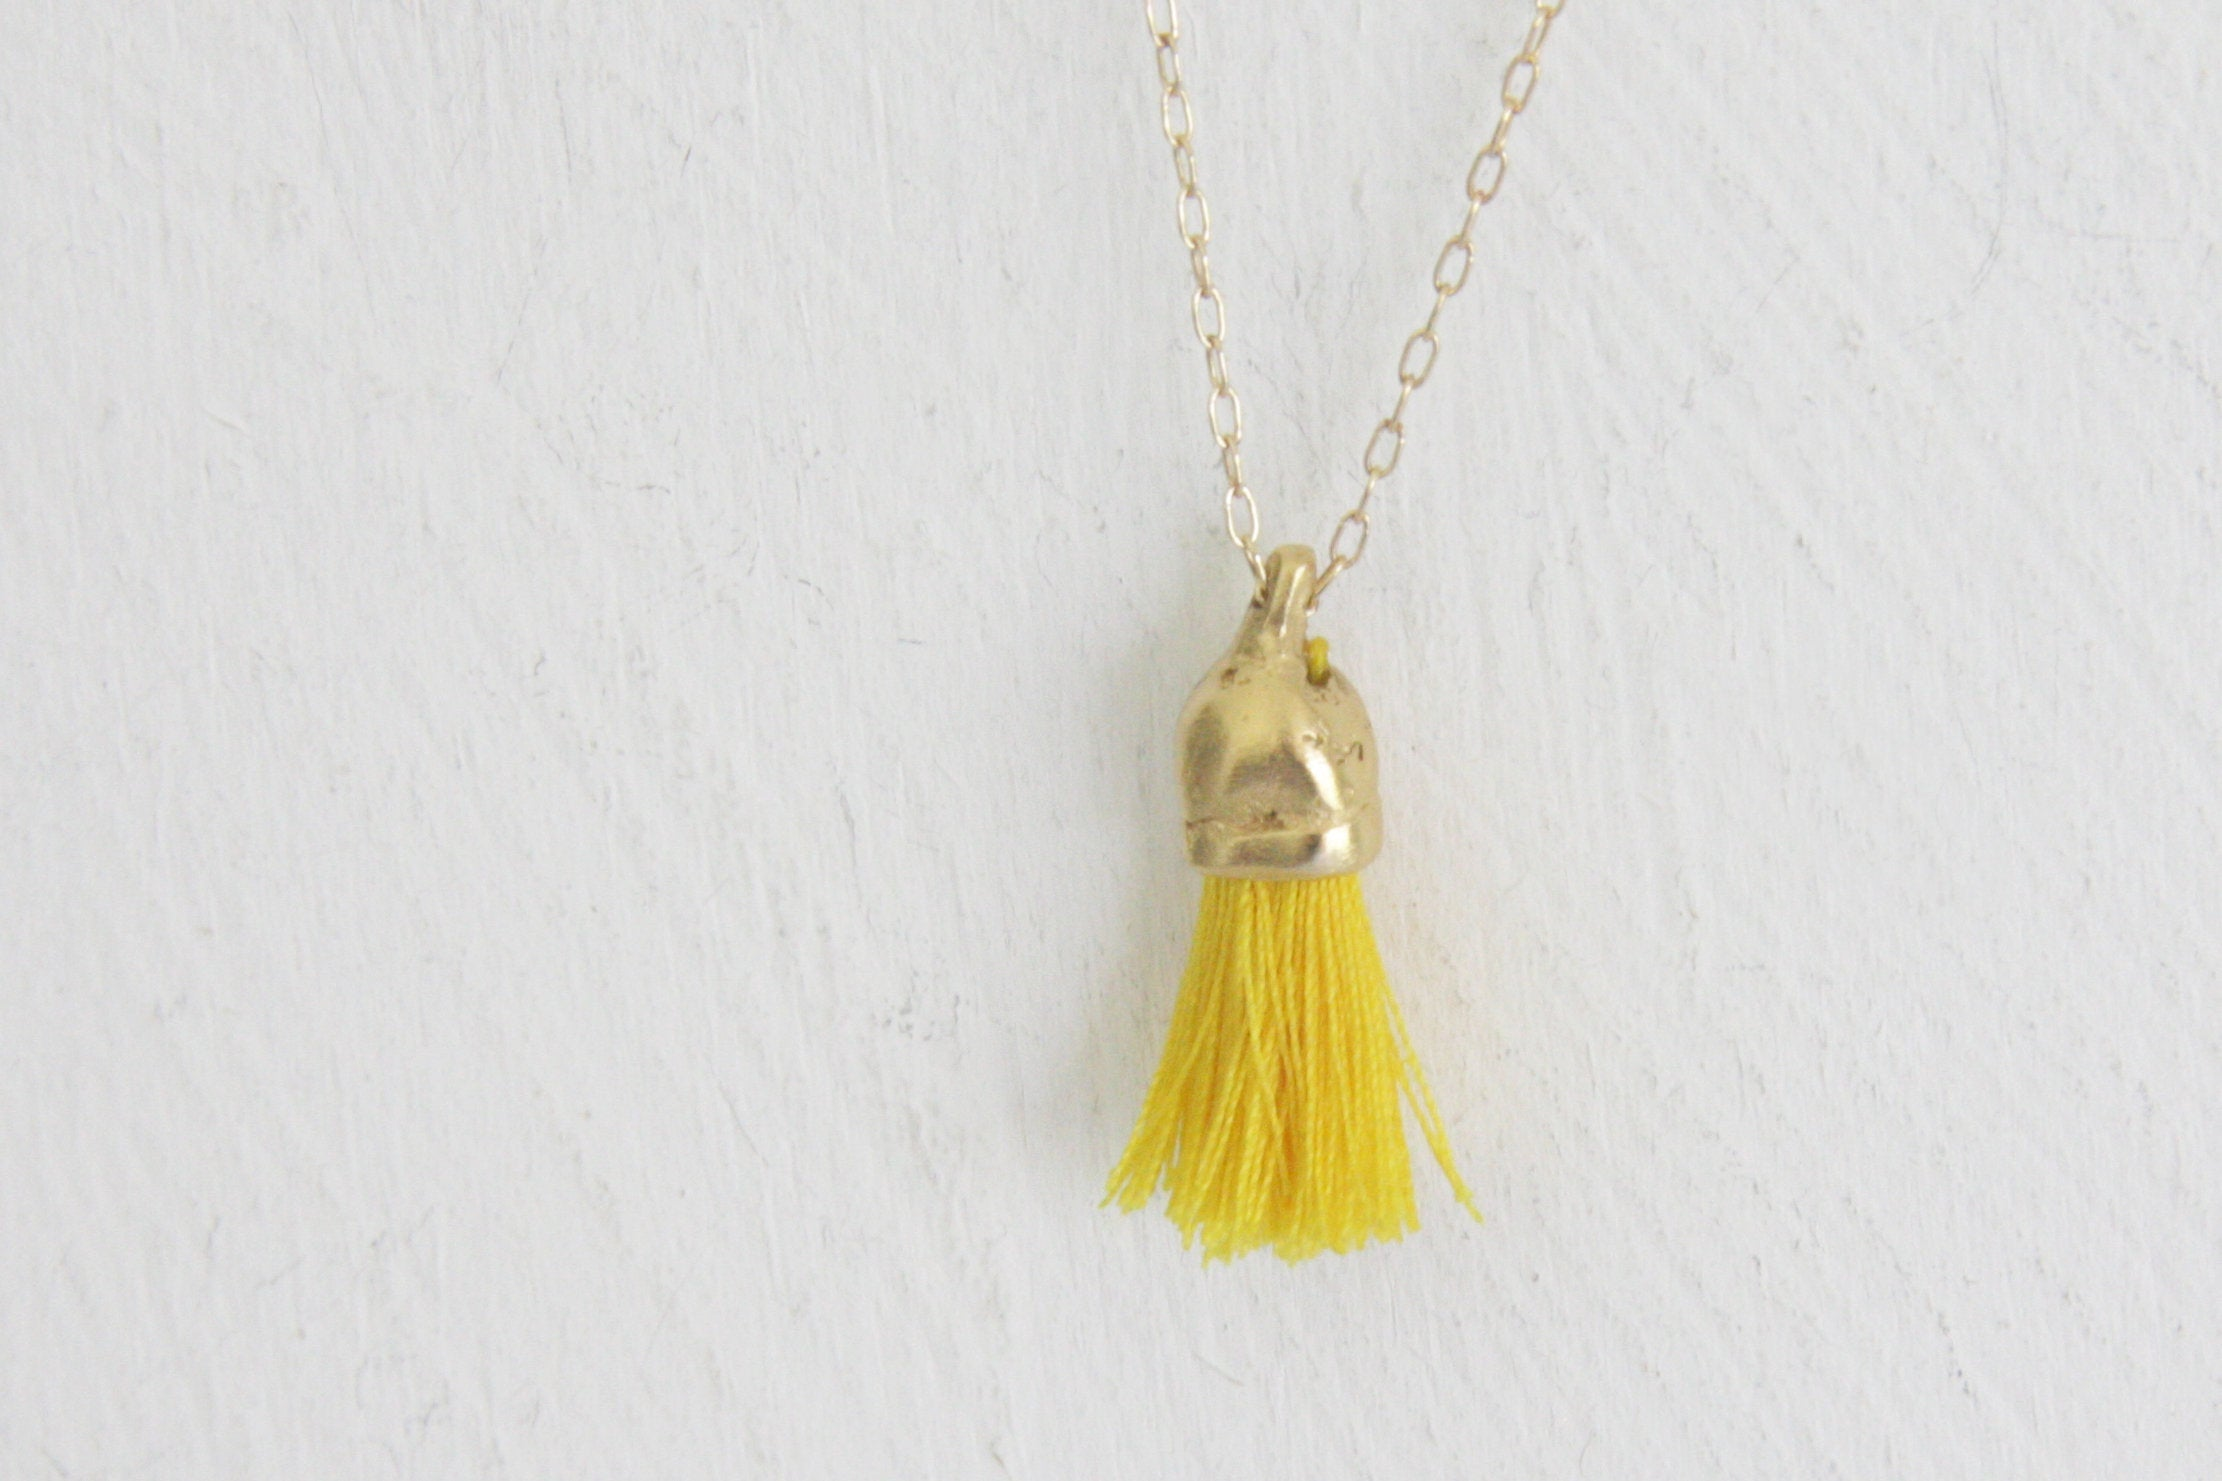 Gold necklace, Handmade unique necklace, organic necklace, Tassel necklace, Colorful necklace, Inspired by nature, Green and gold - hs